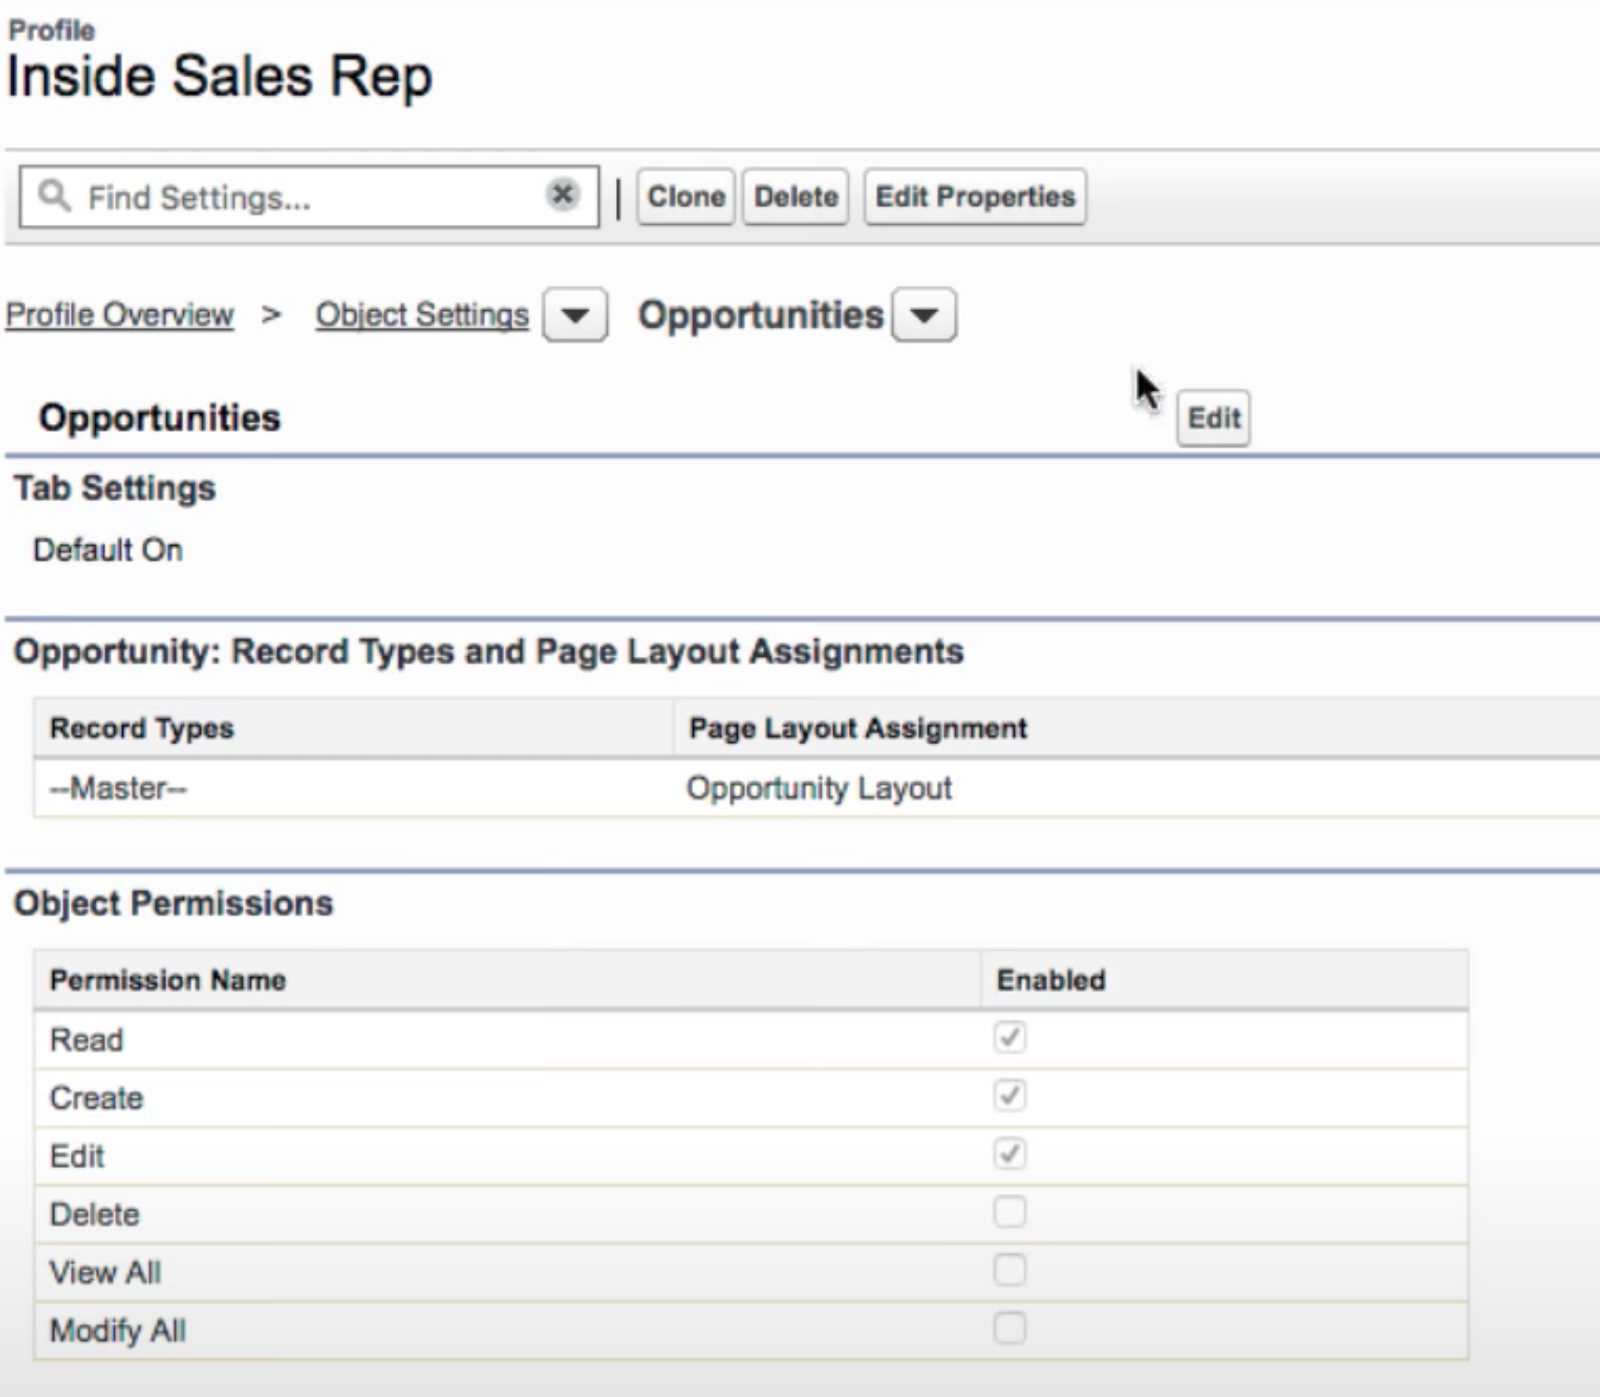 Who Can See What in Salesforce